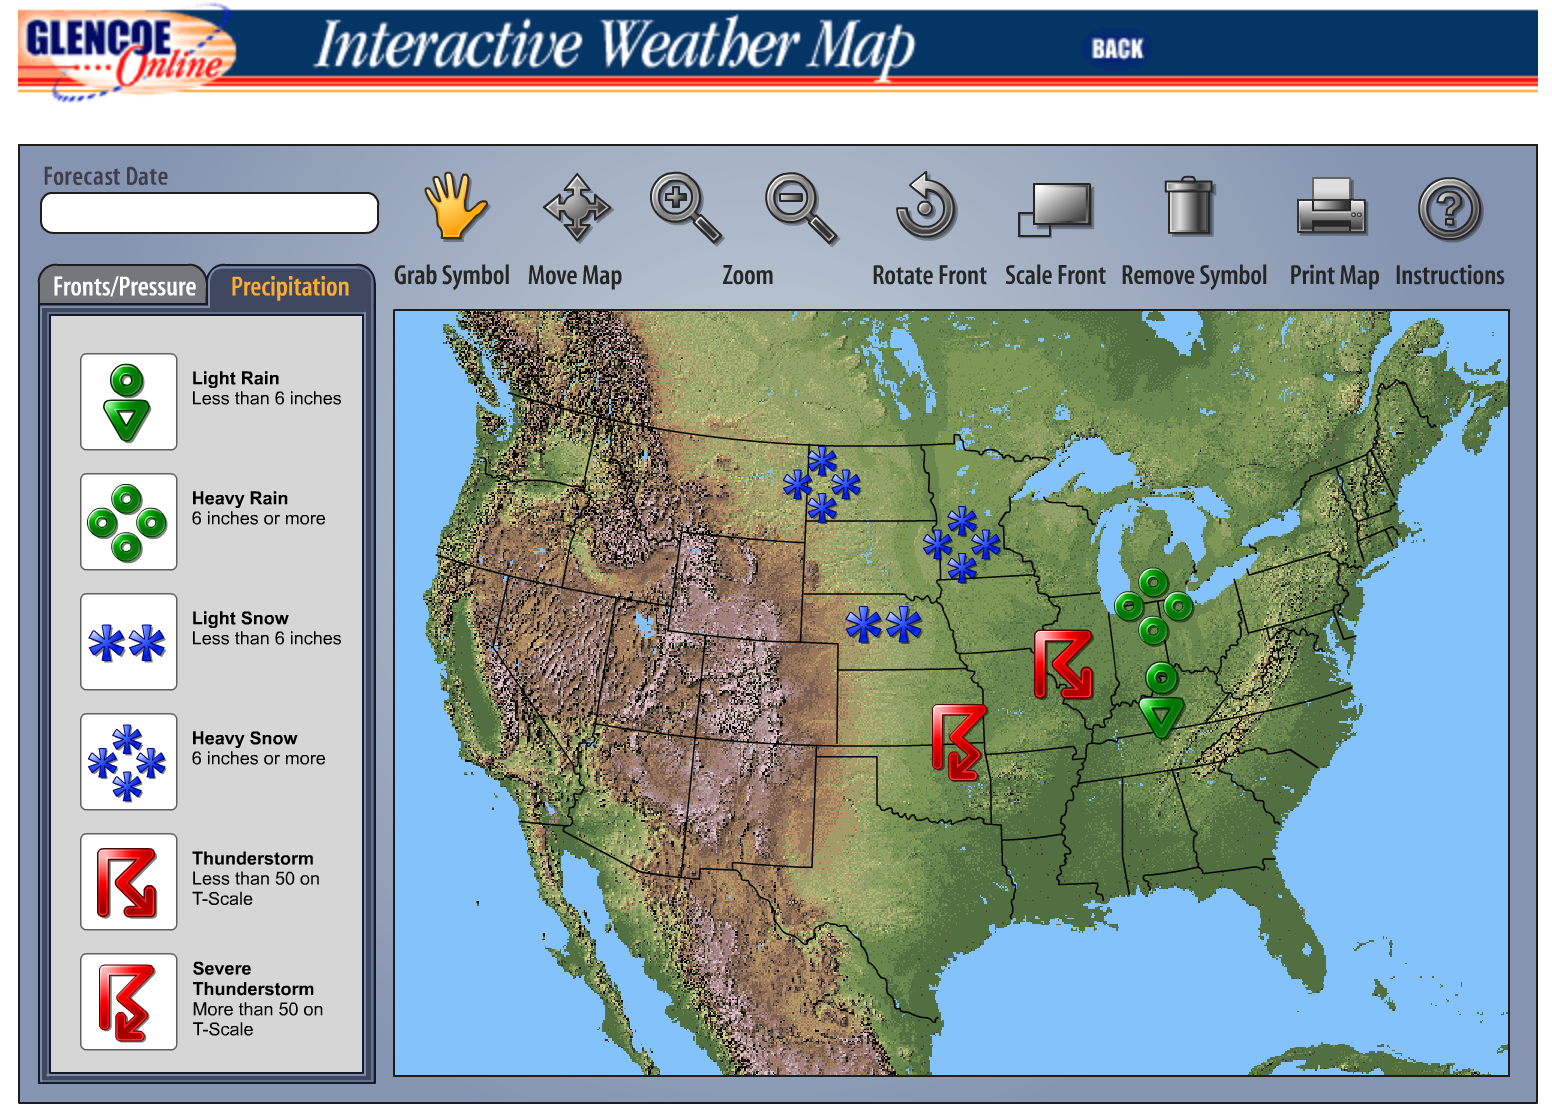 medium resolution of Weather Map Worksheet 4th Grade   Printable Worksheets and Activities for  Teachers